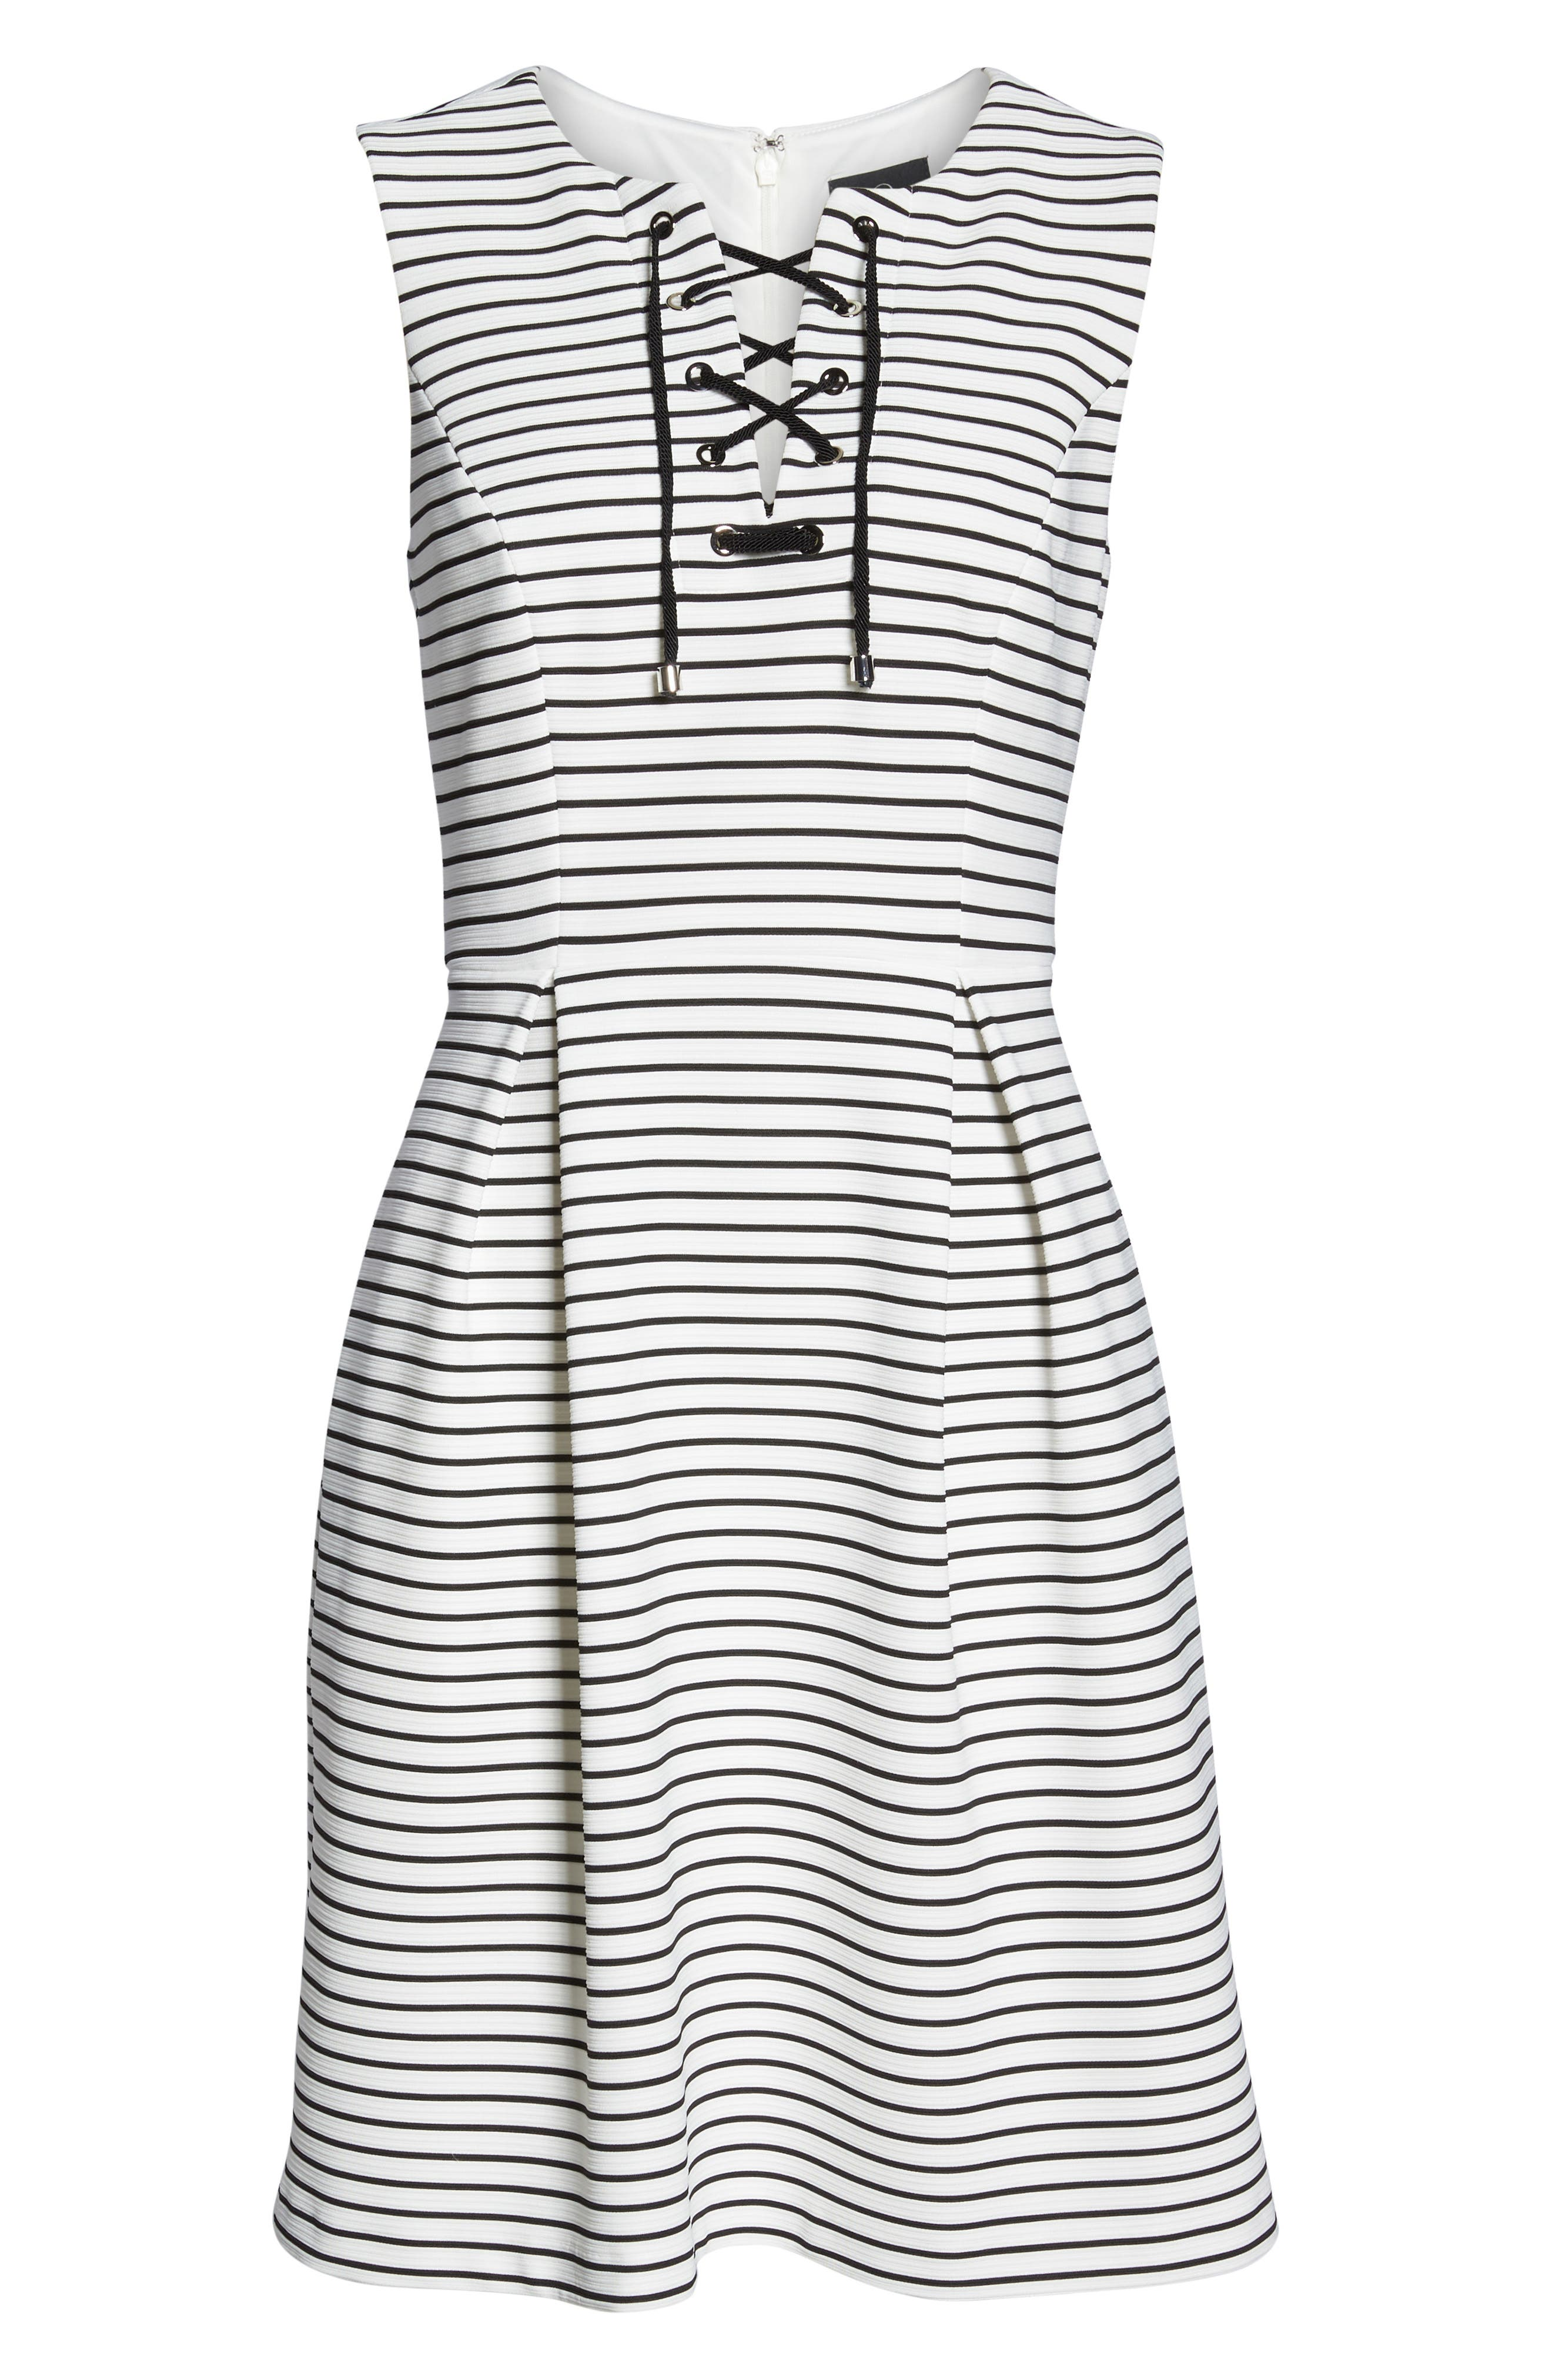 Stripe Fit & Flare Dress,                             Alternate thumbnail 6, color,                             Ivory/ Black